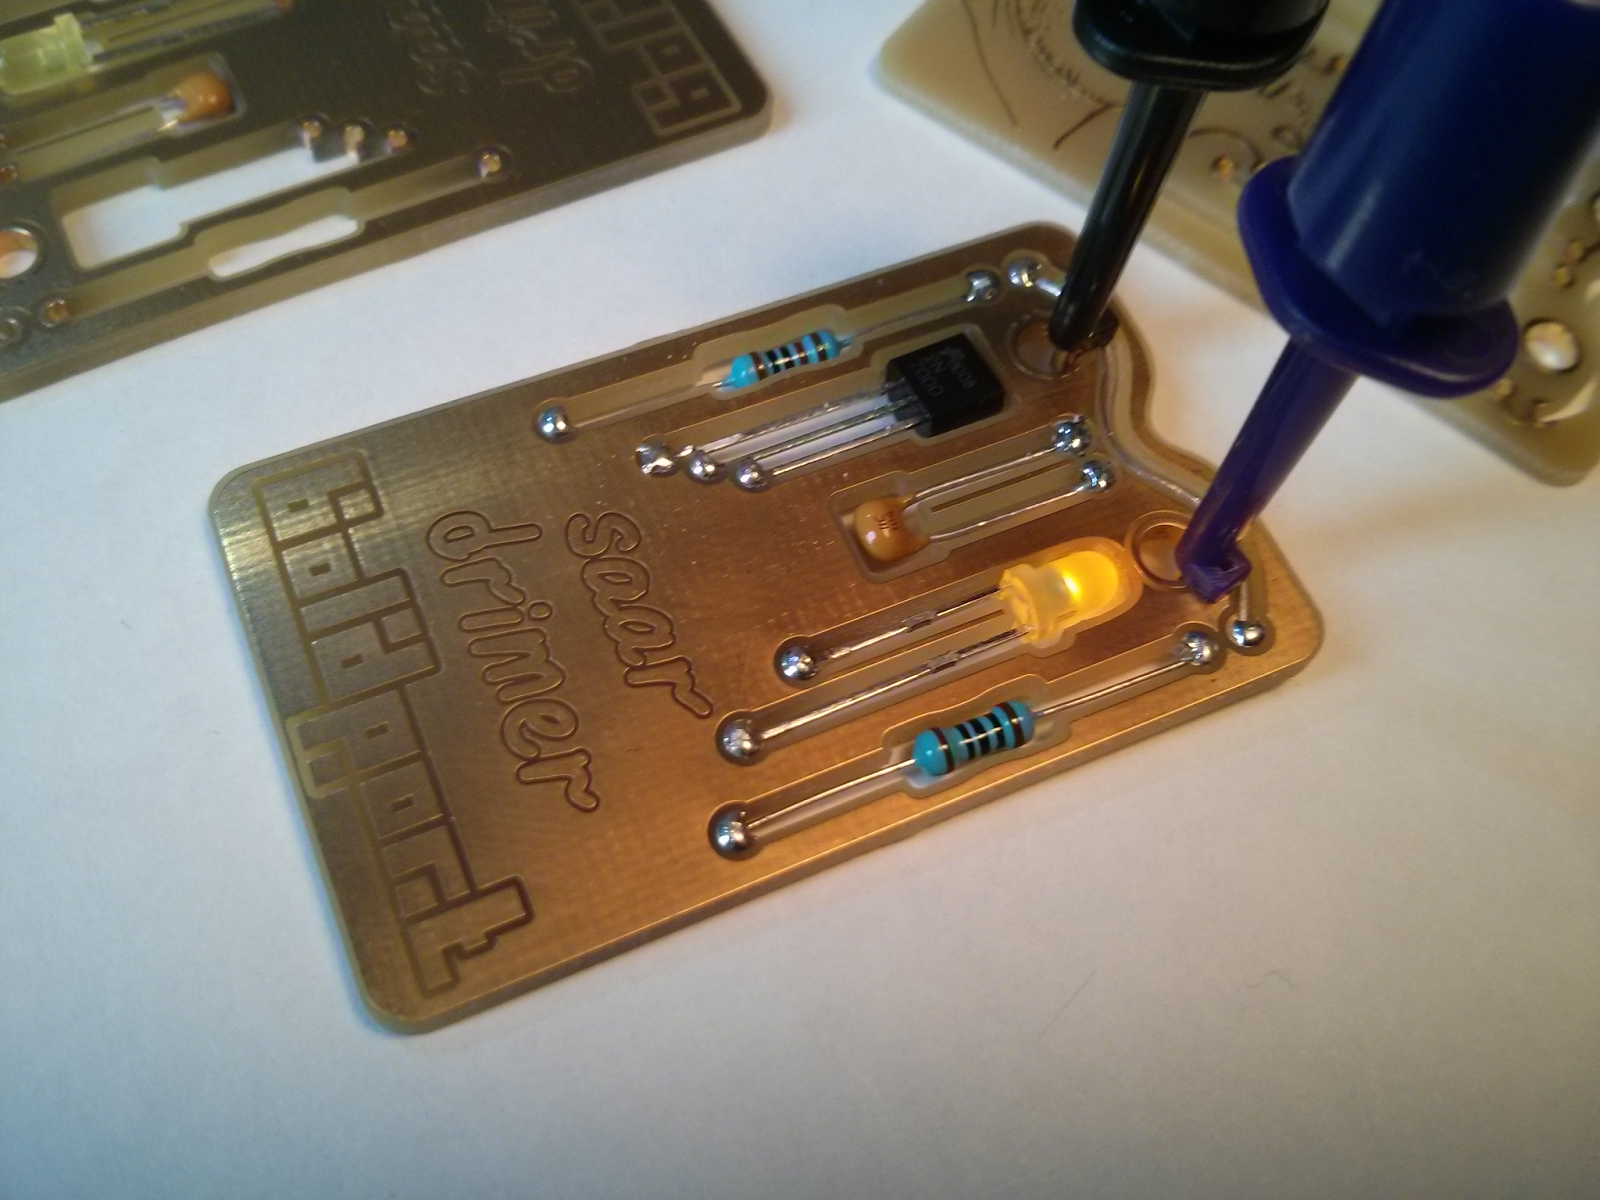 It's a functional circuit! The LED lights up when you apply power.